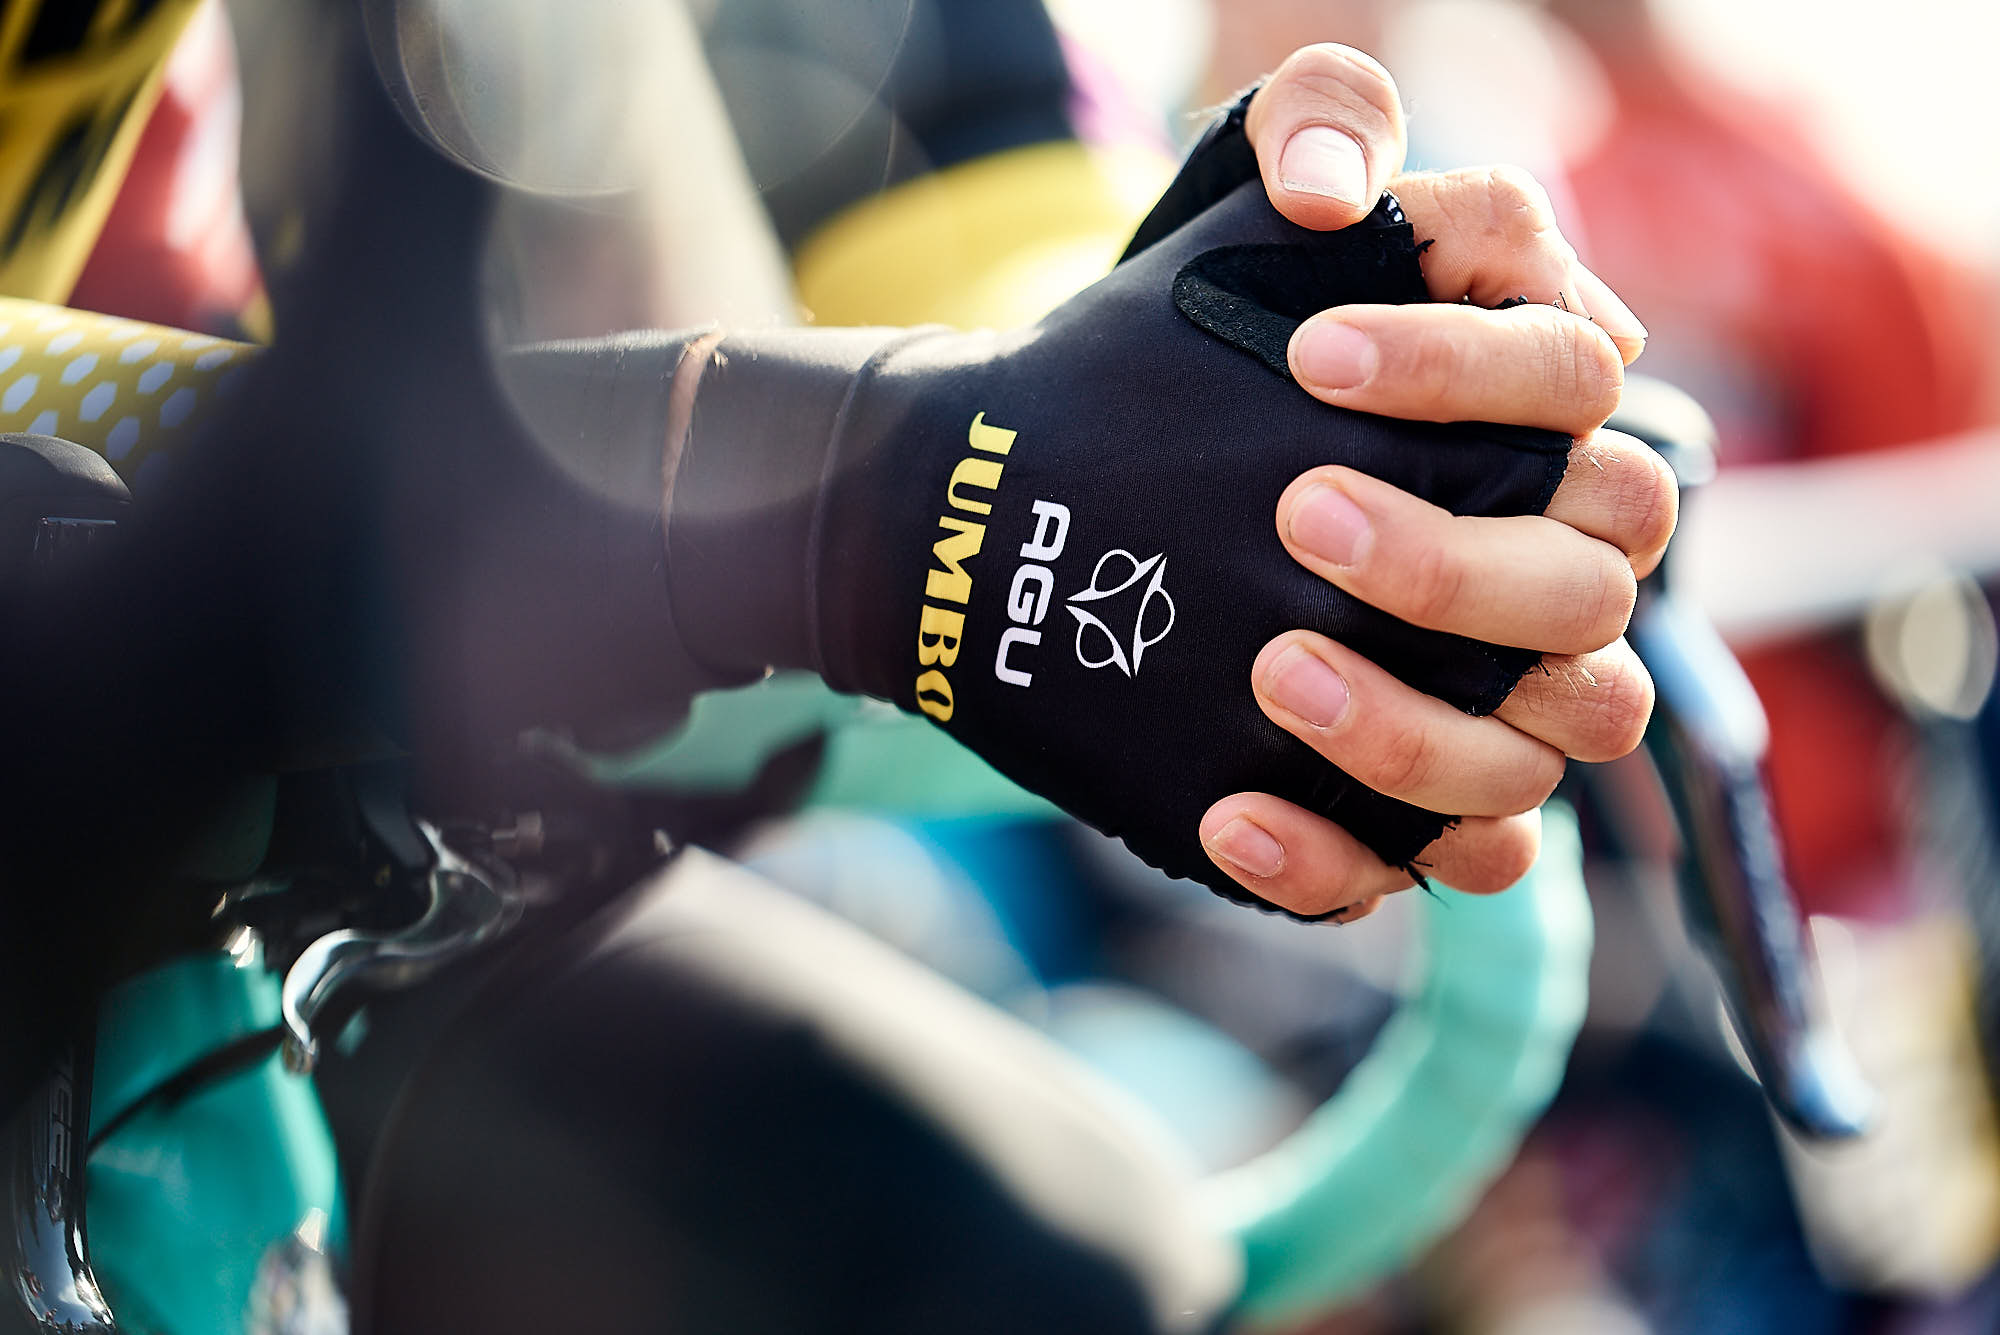 Hands of Wout van Aert, resting on his handlebars